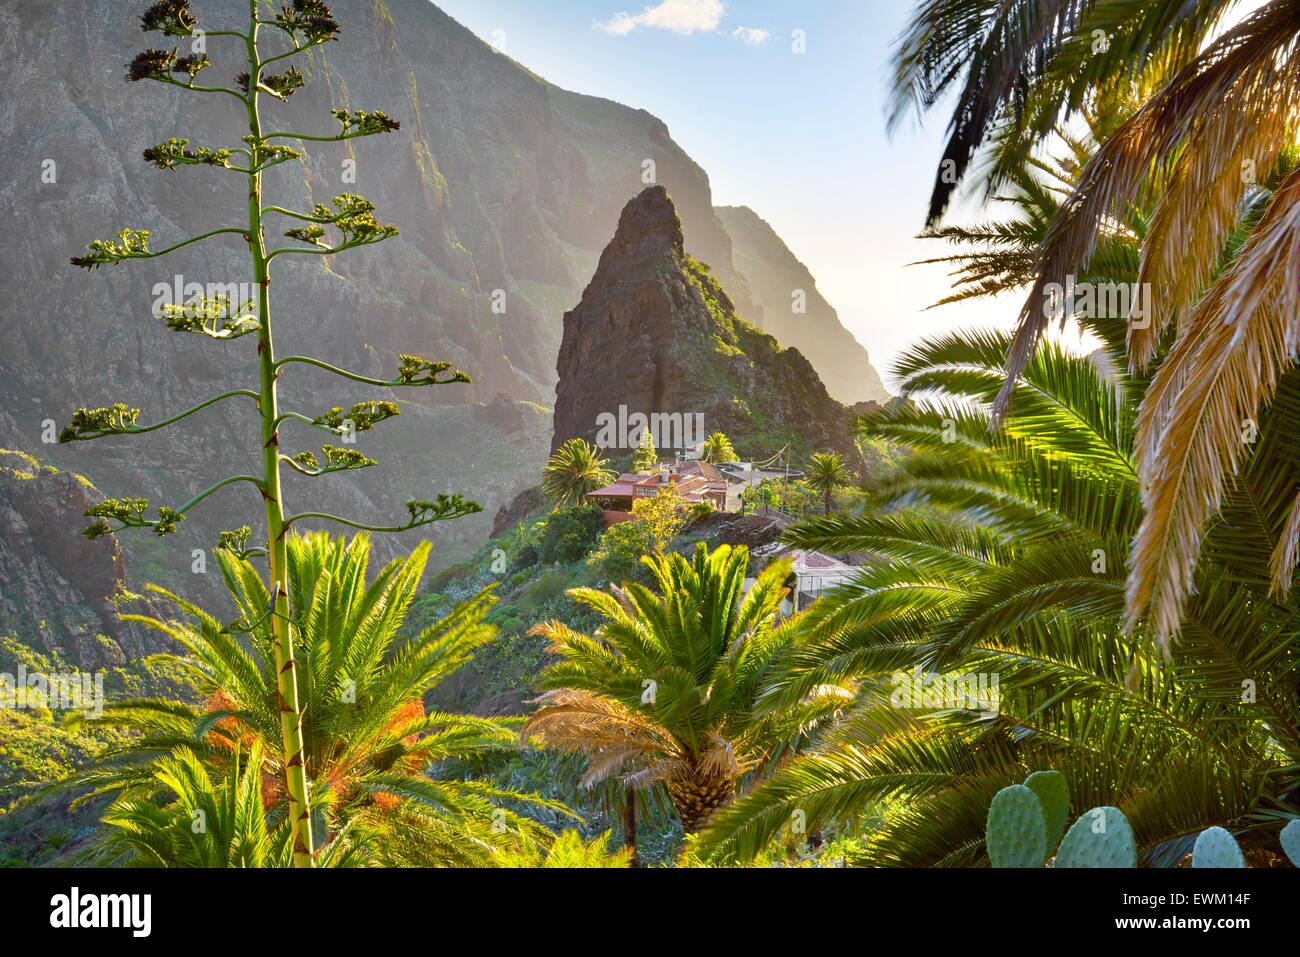 Masca village with its characteristic pinnacle in the center, Tenerife, Canary Islands - Stock Image